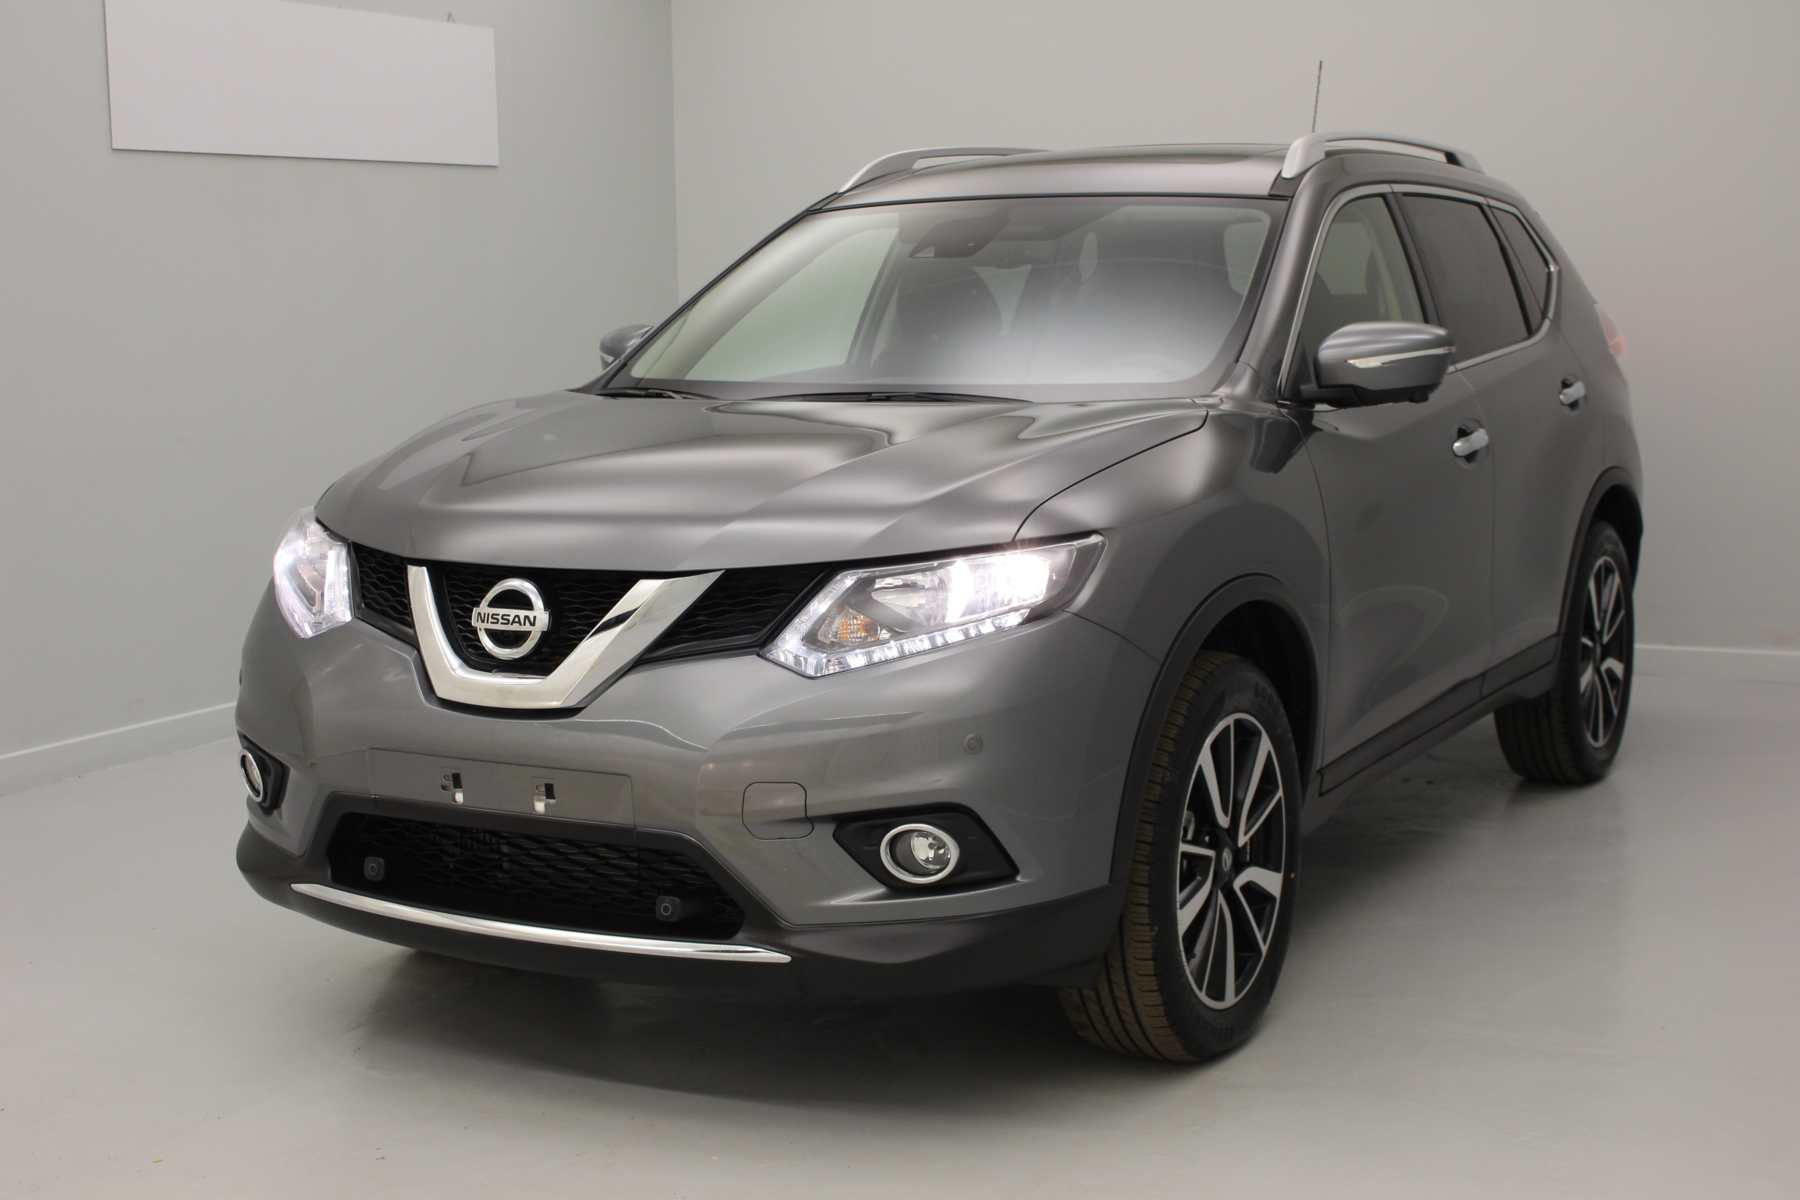 NISSAN X-Trail 1.6 dCi 130 Euro 6 7pl All-Mode 4x4-i Tekna Gris Squale avec options